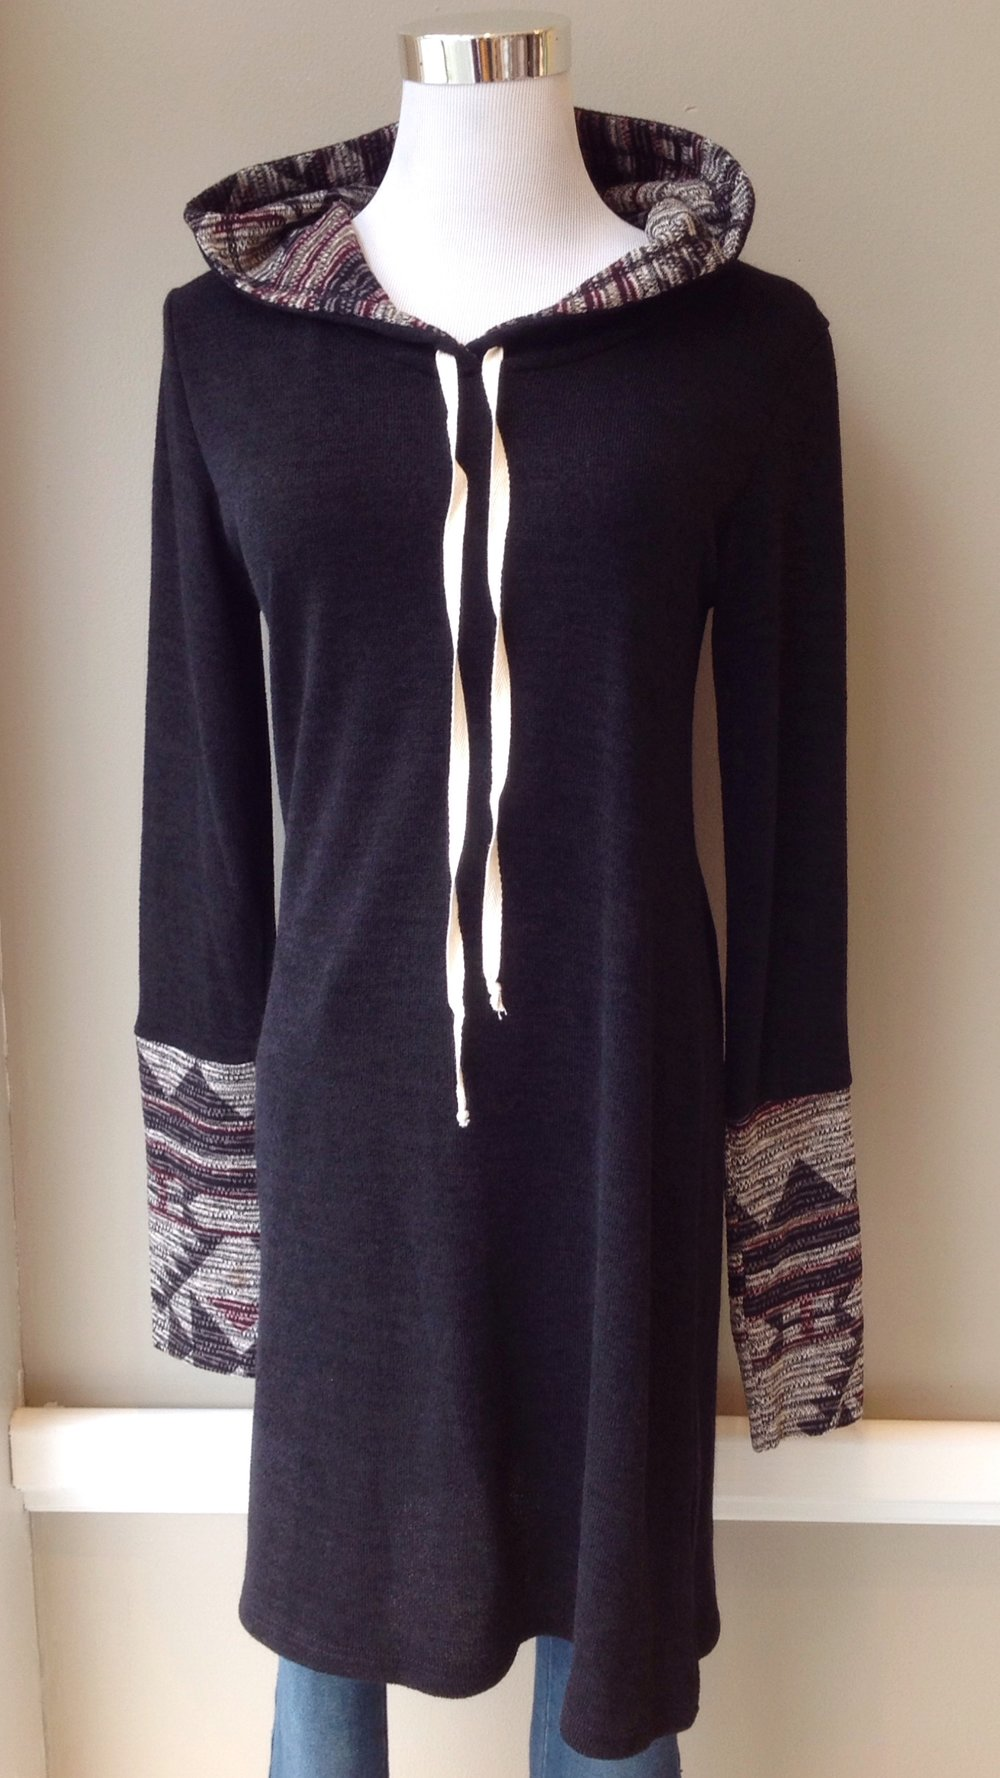 Sweater knit tunic with hood in black/multi, $38